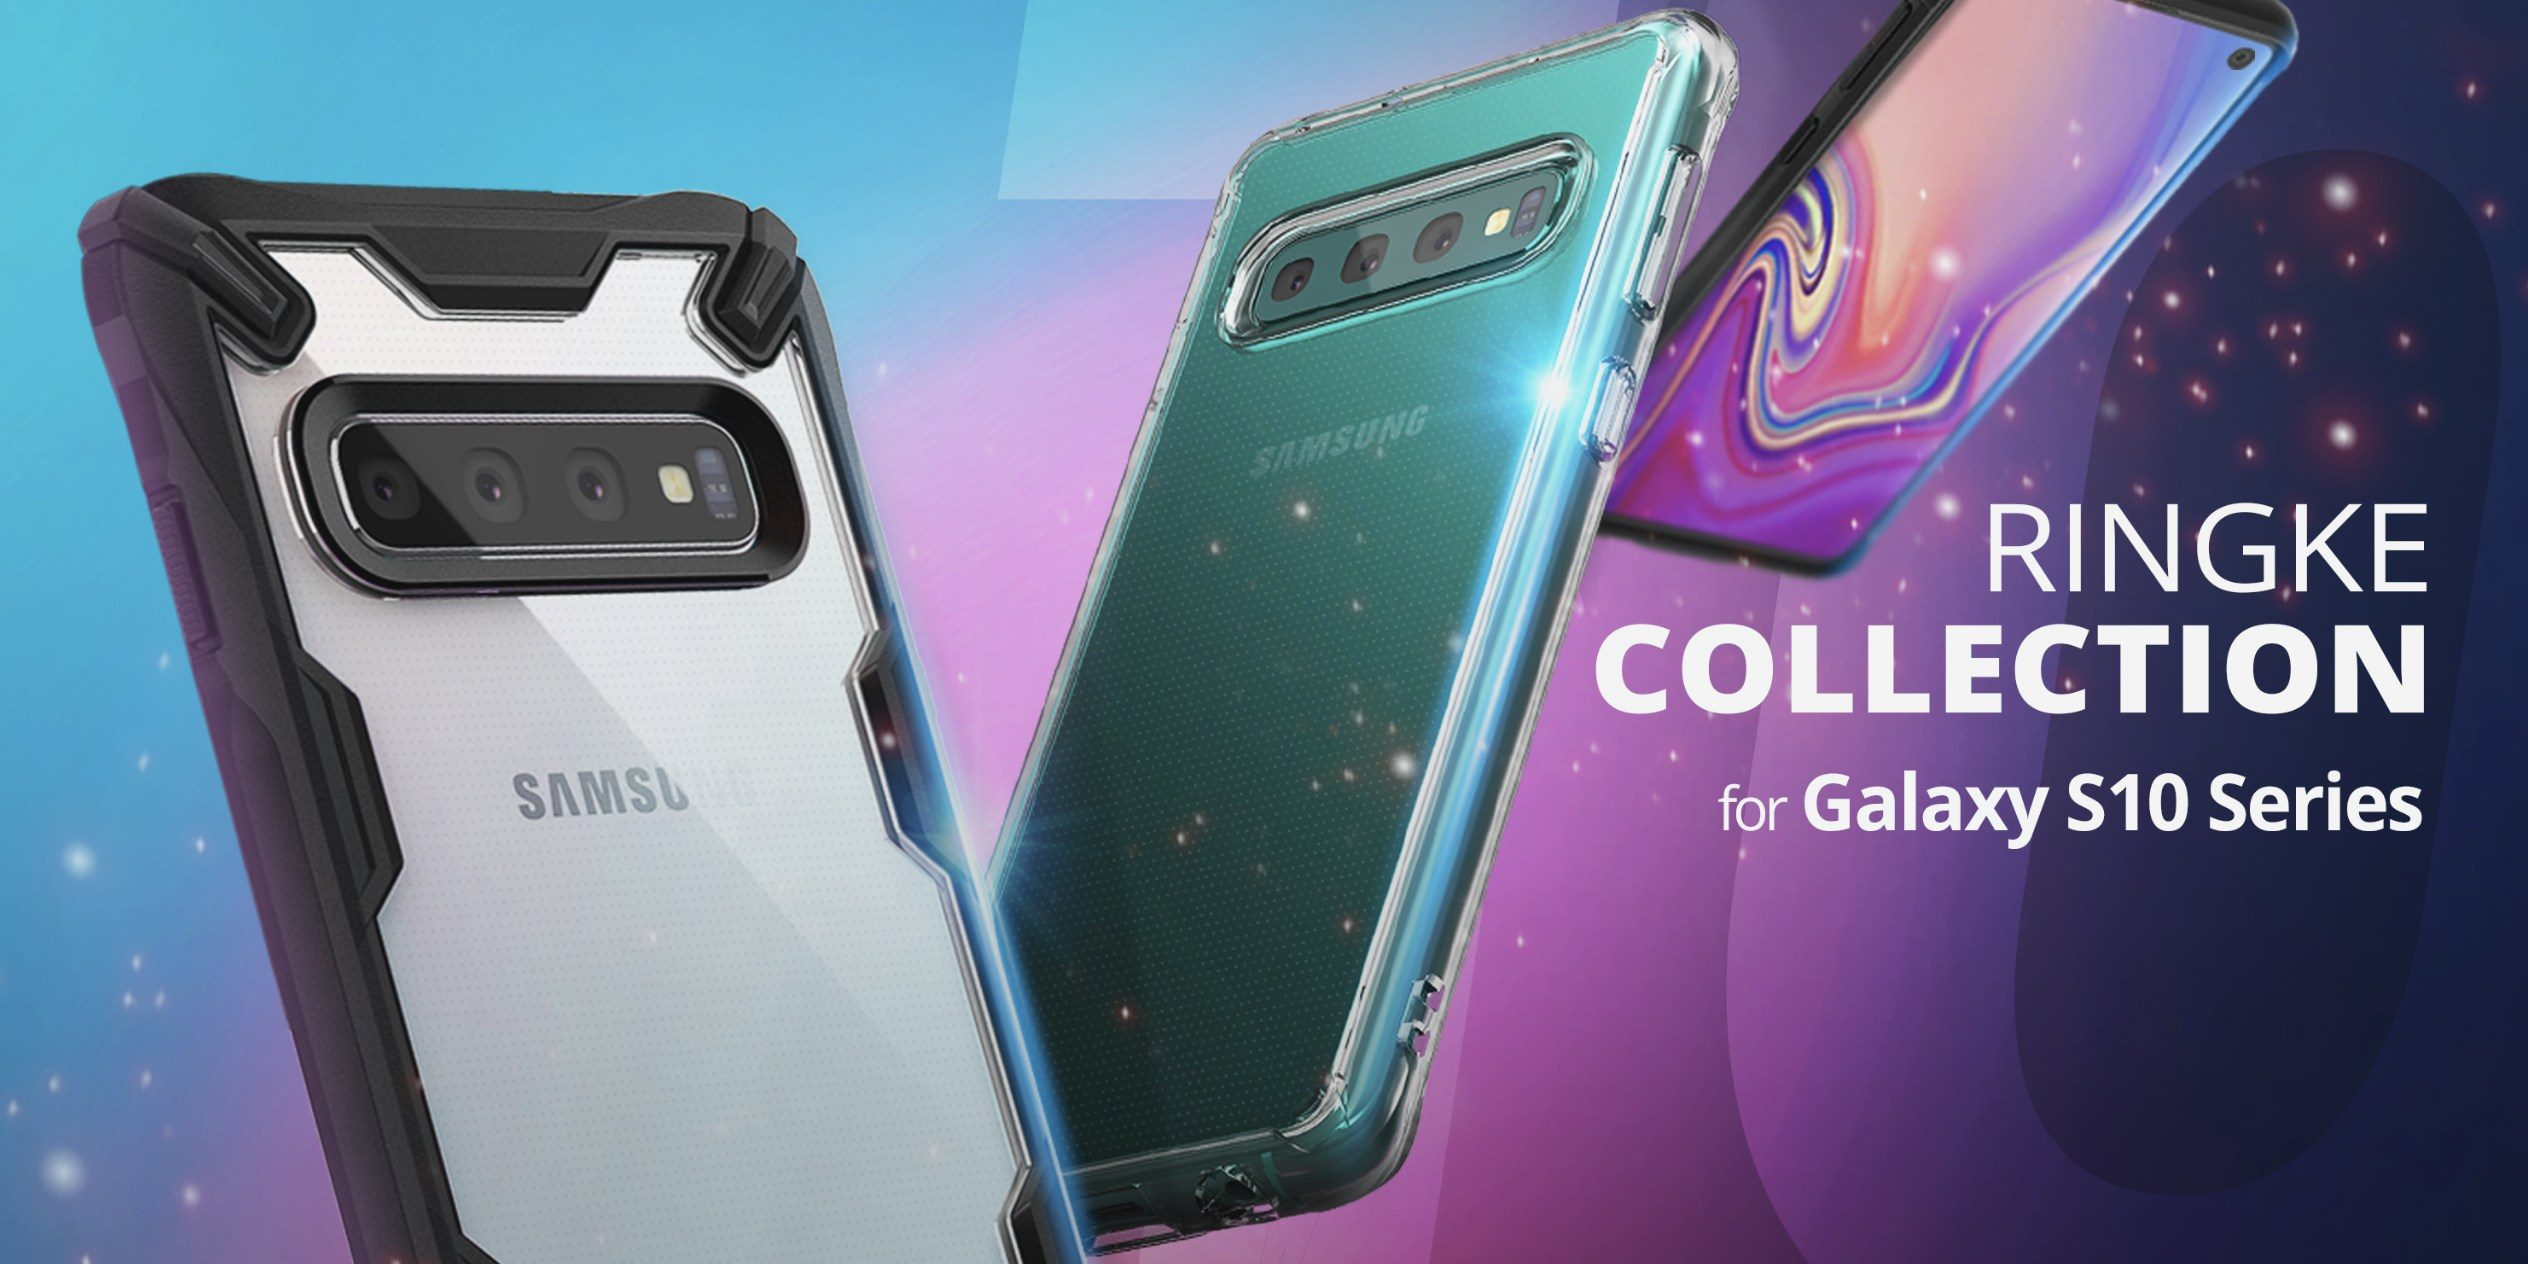 9to5Toys Letzter Anruf: Galaxy S10 Cases 4 $, Mohu Leaf HDTV-Antenne 13 $, Smart Fire TV Edition HDTV 100 $, mehr